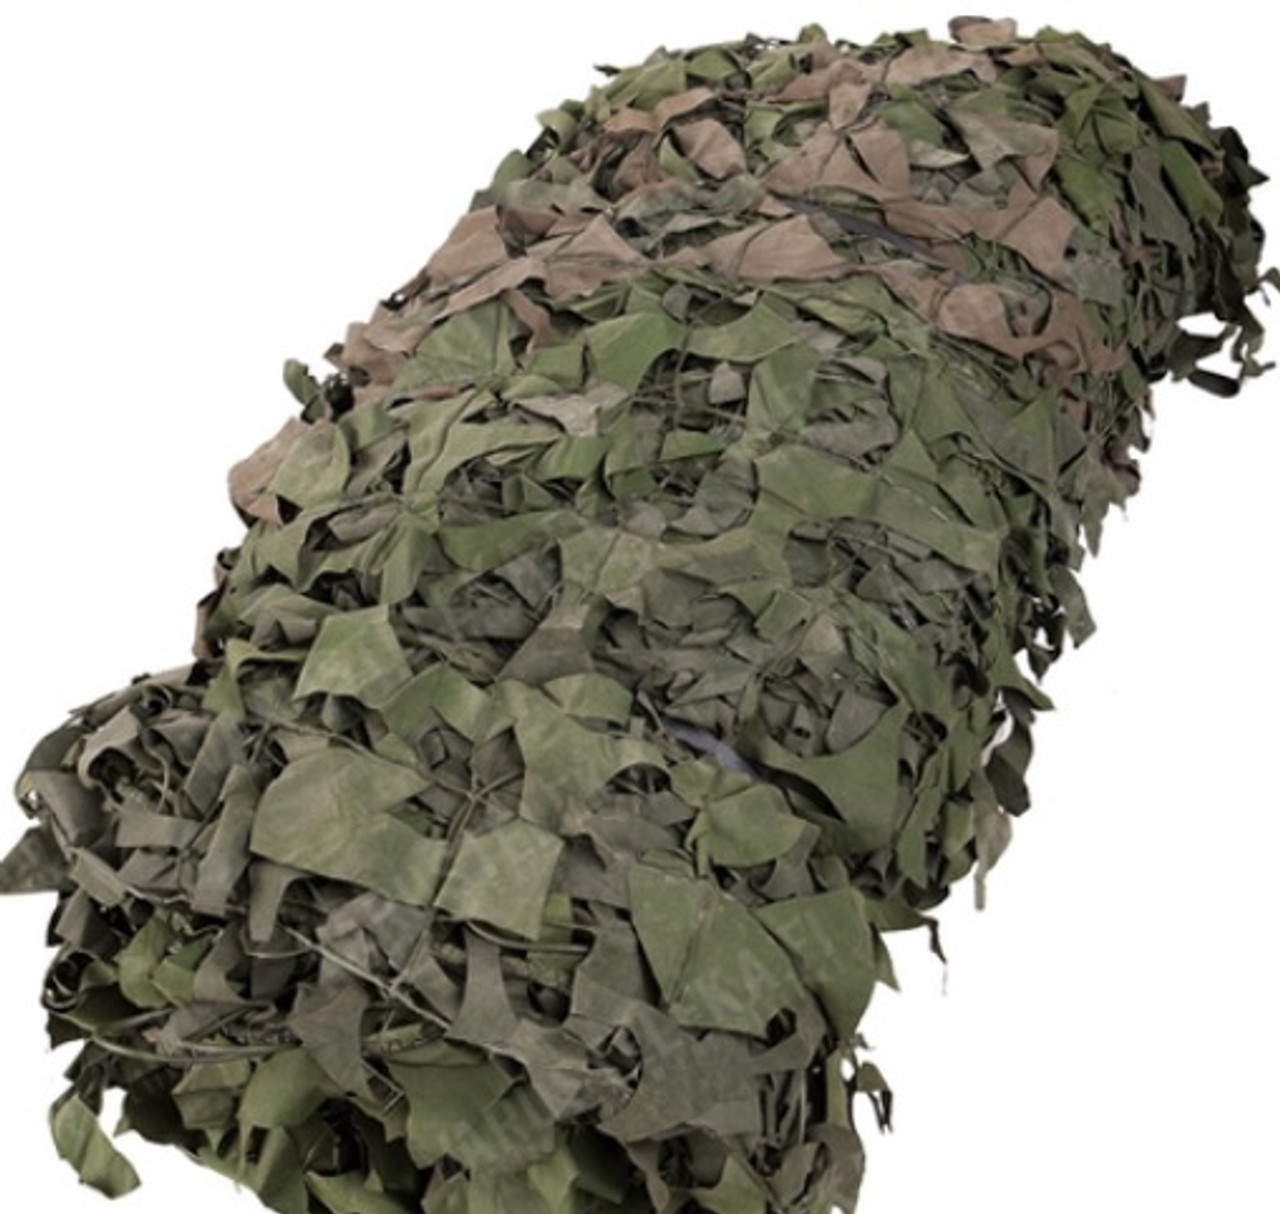 Canadian Army Surplus Camo Netting Approx. 20' x 20' Brown & Green